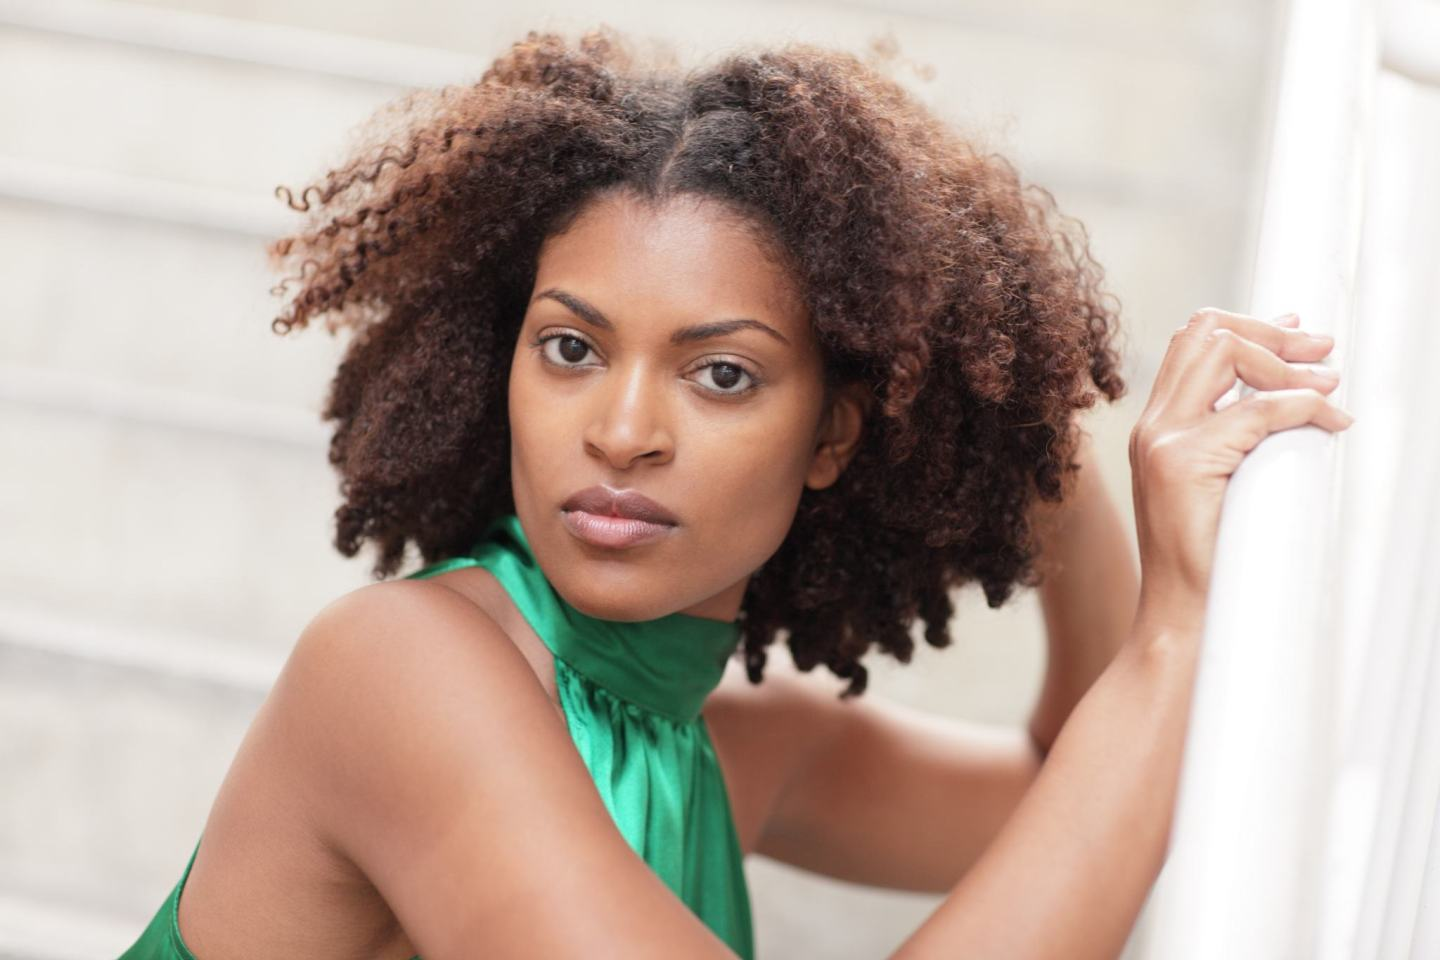 Spring Hair time. Every season has it's challenges, and for spring, we have to get over the winter cold and dryness and get our hair ready for warmer temps.